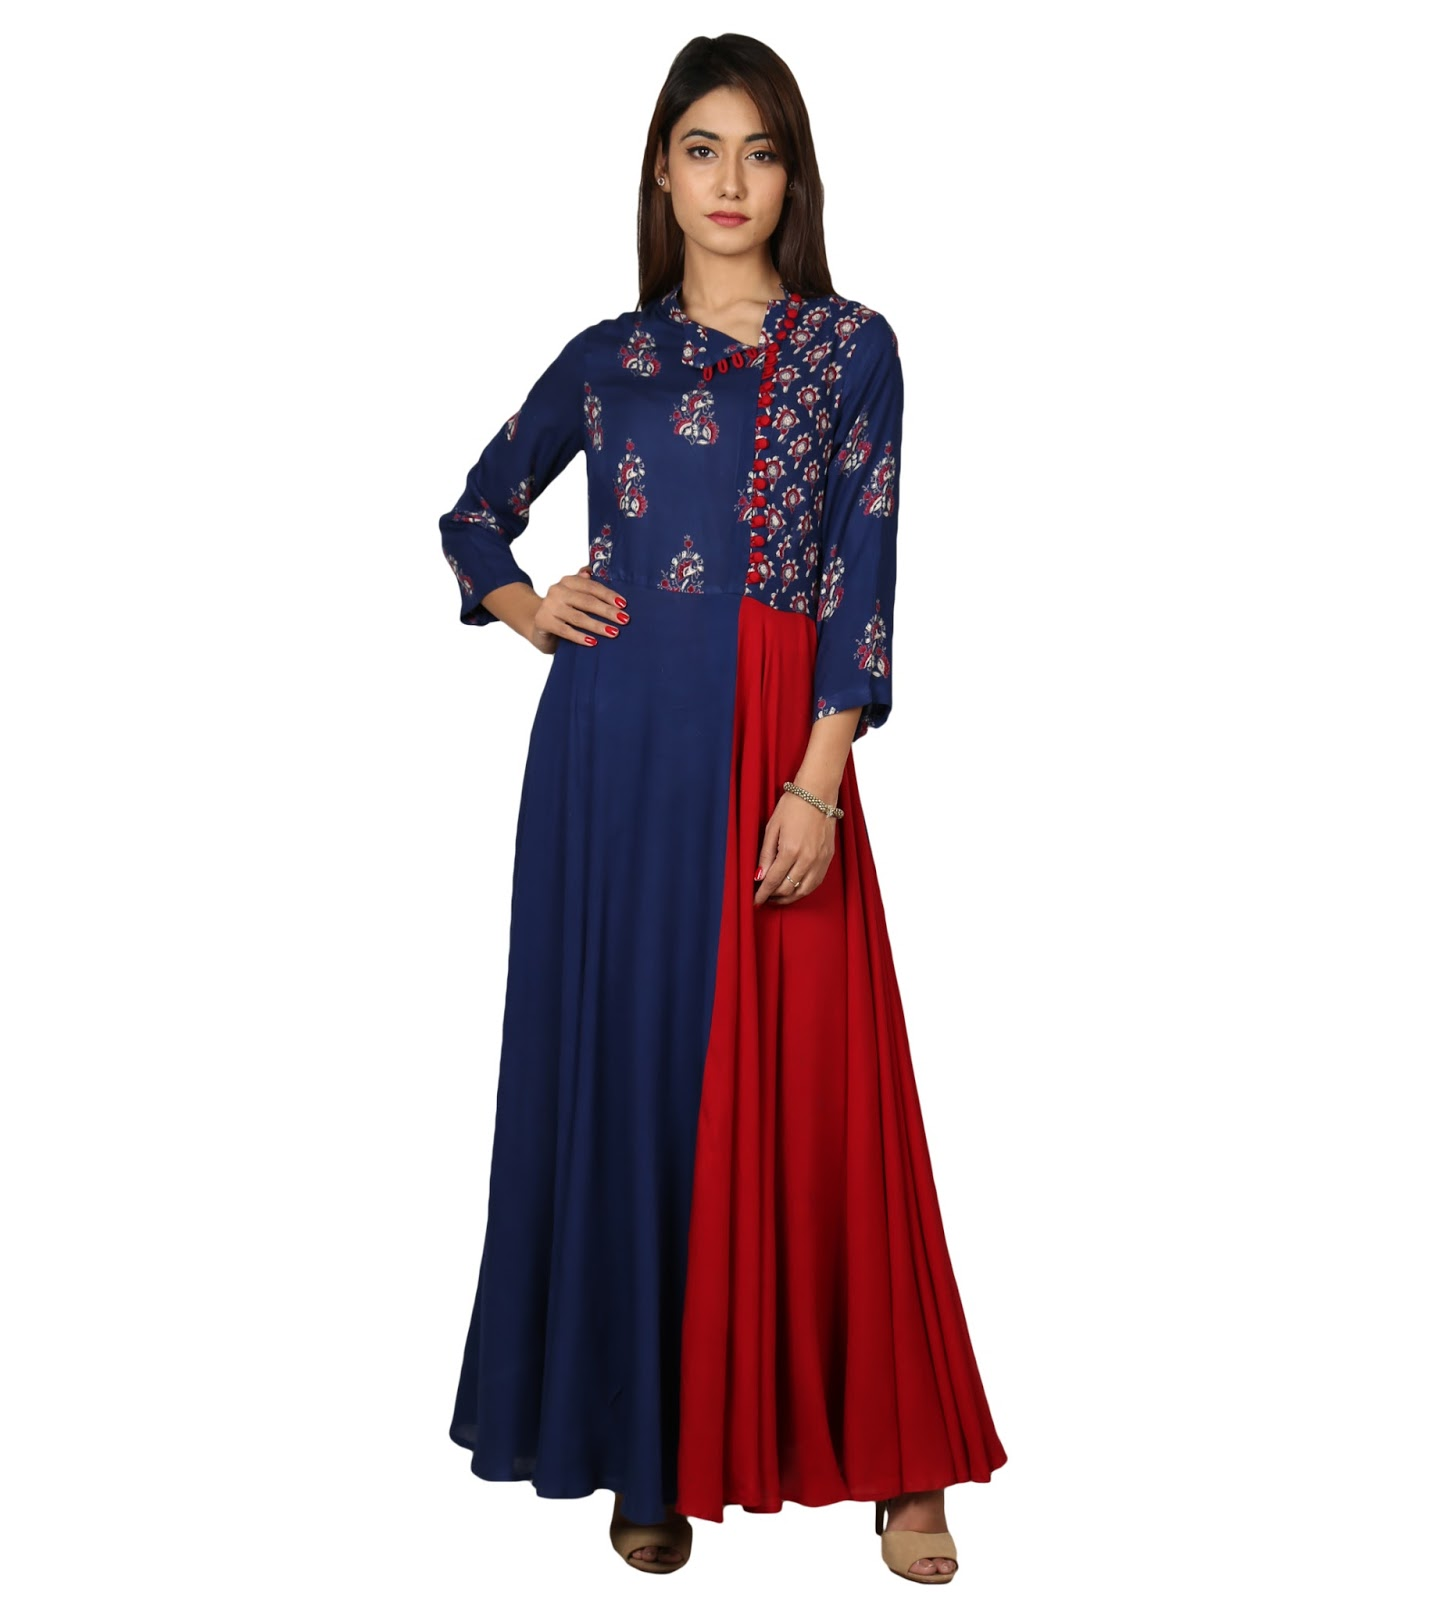 Gown style cape kurtis